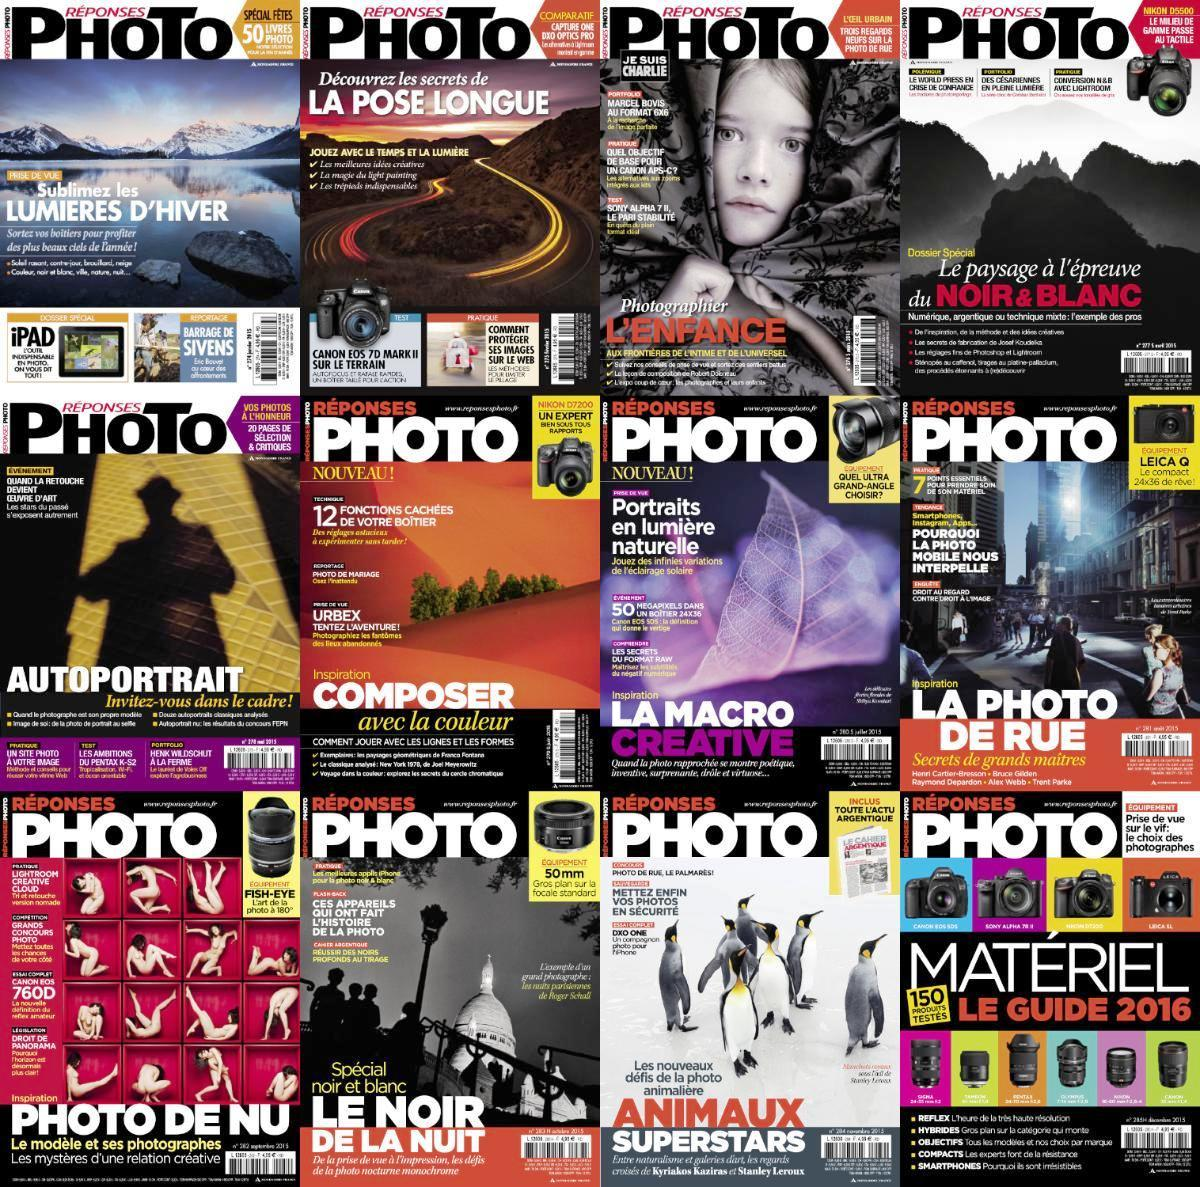 Réponses Photo 2015 - Full Year Issues Collection